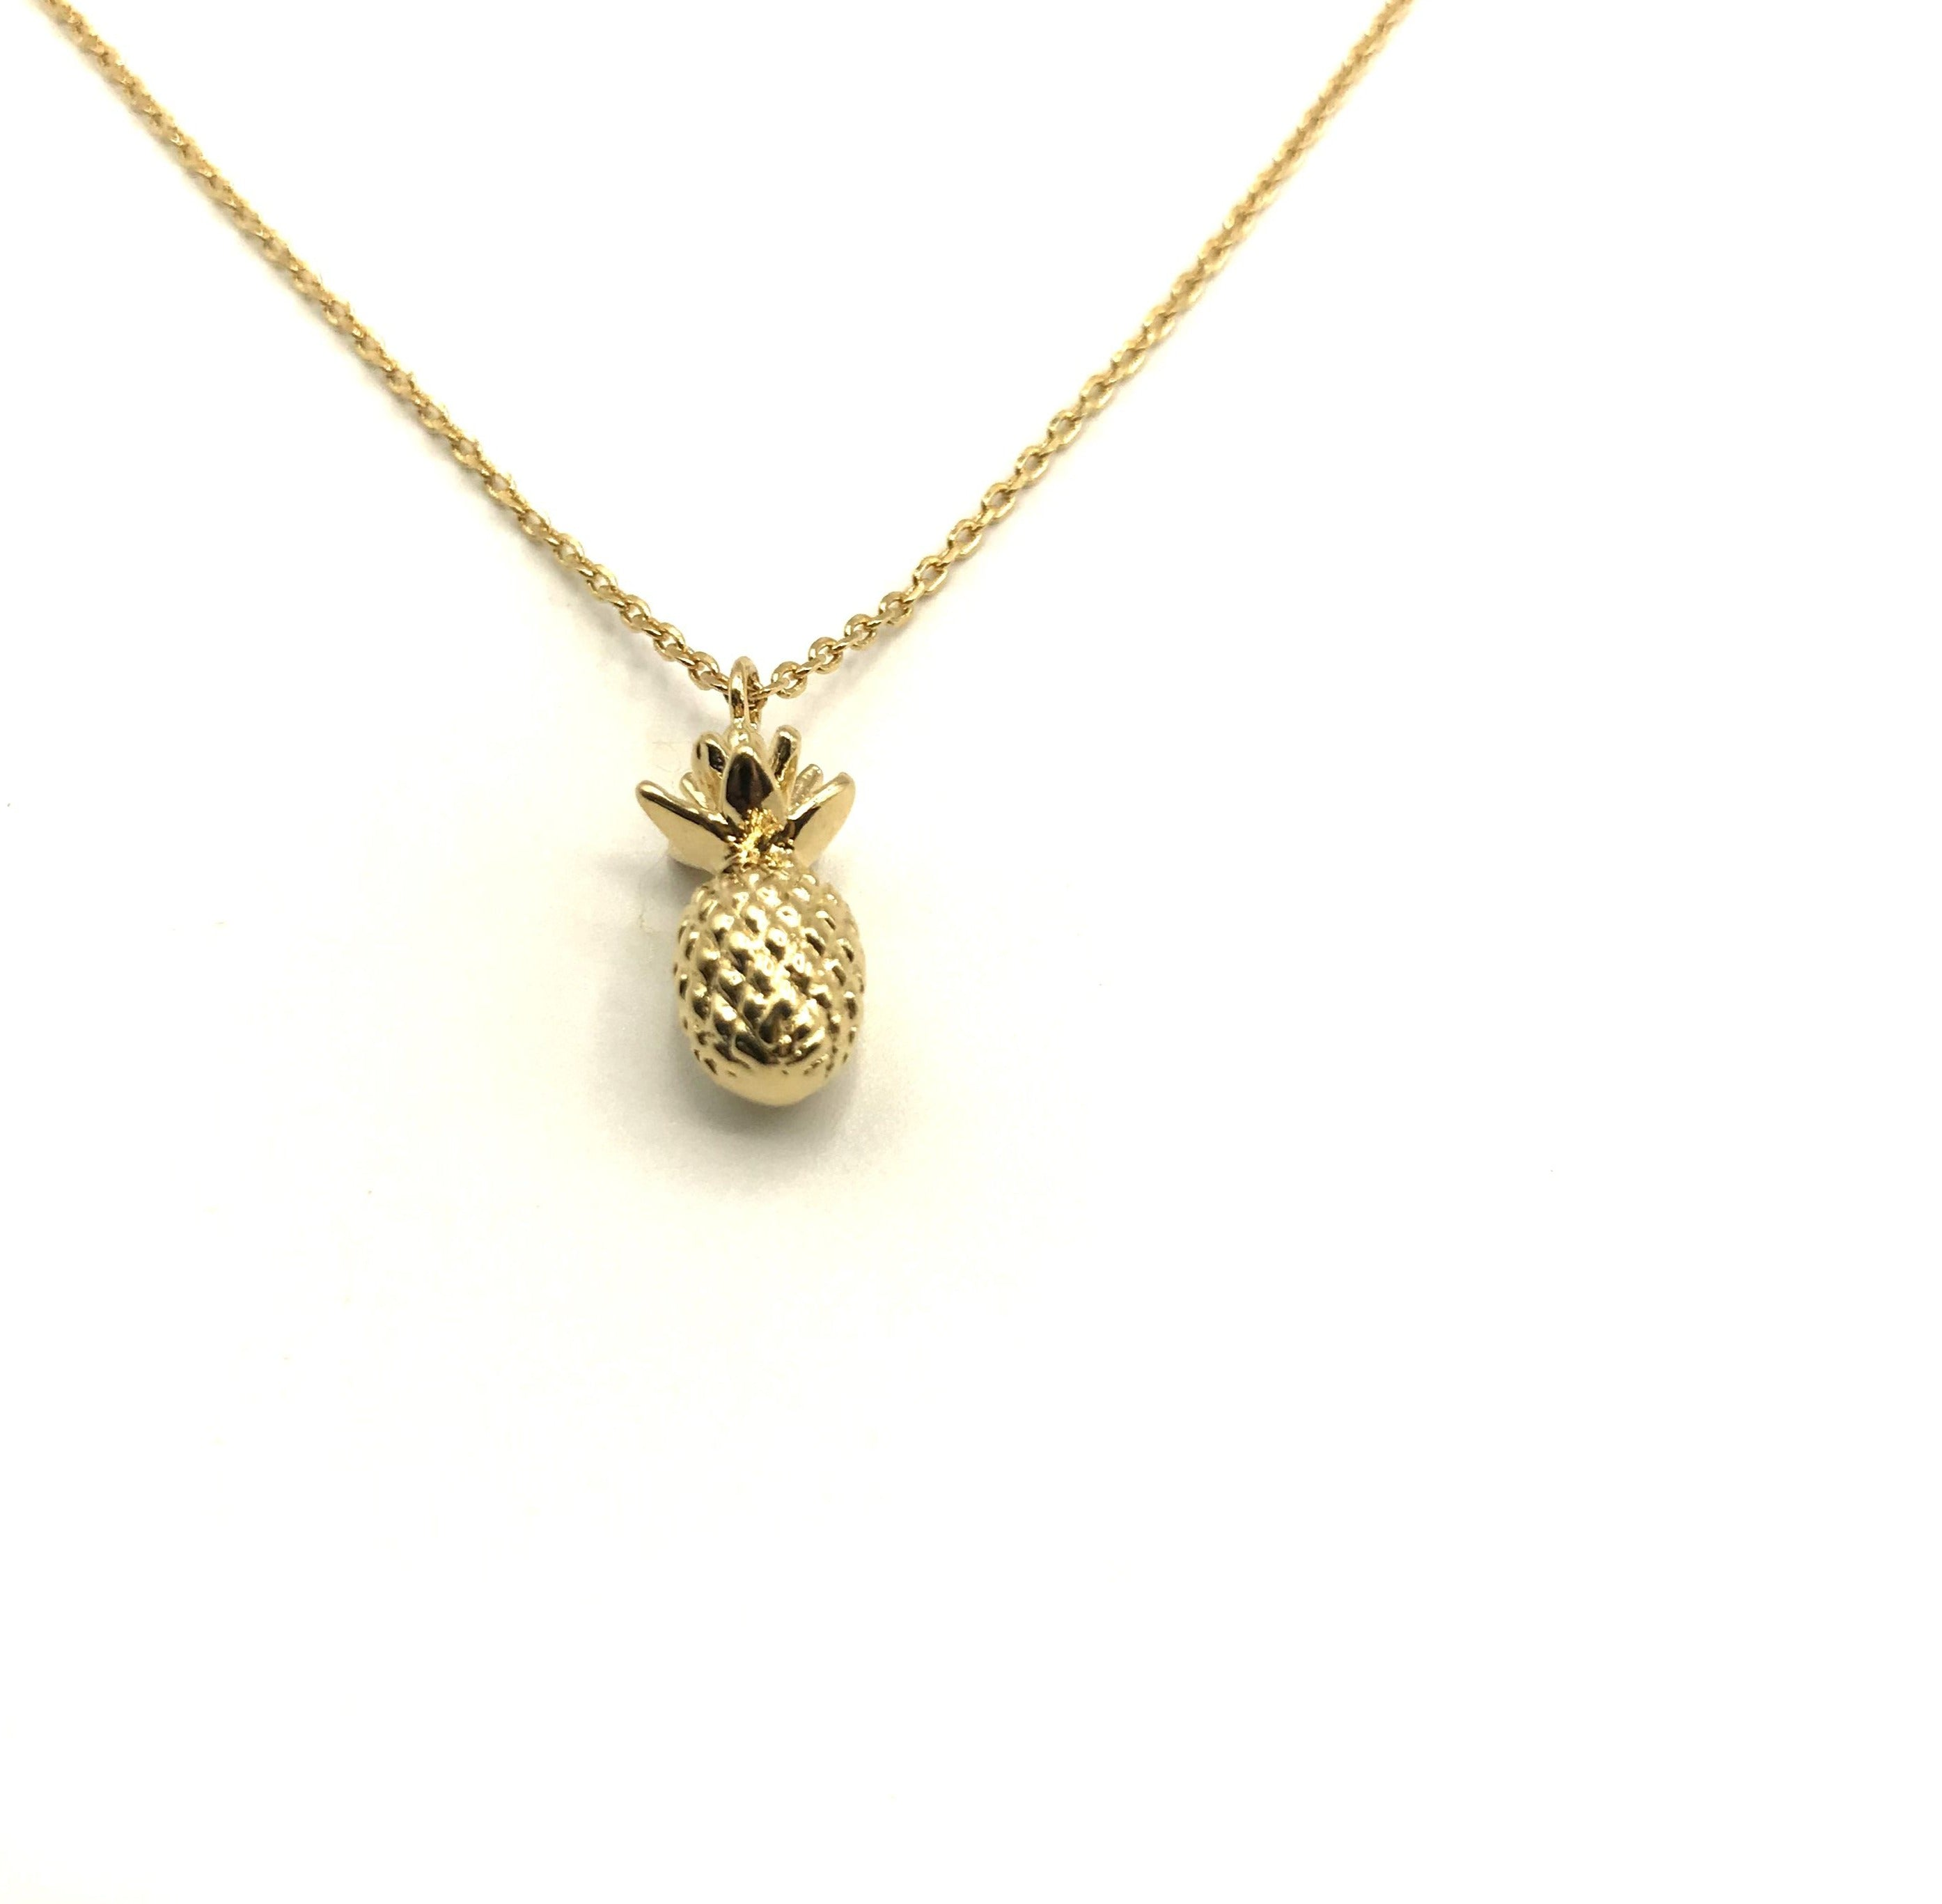 3D pineapple necklace